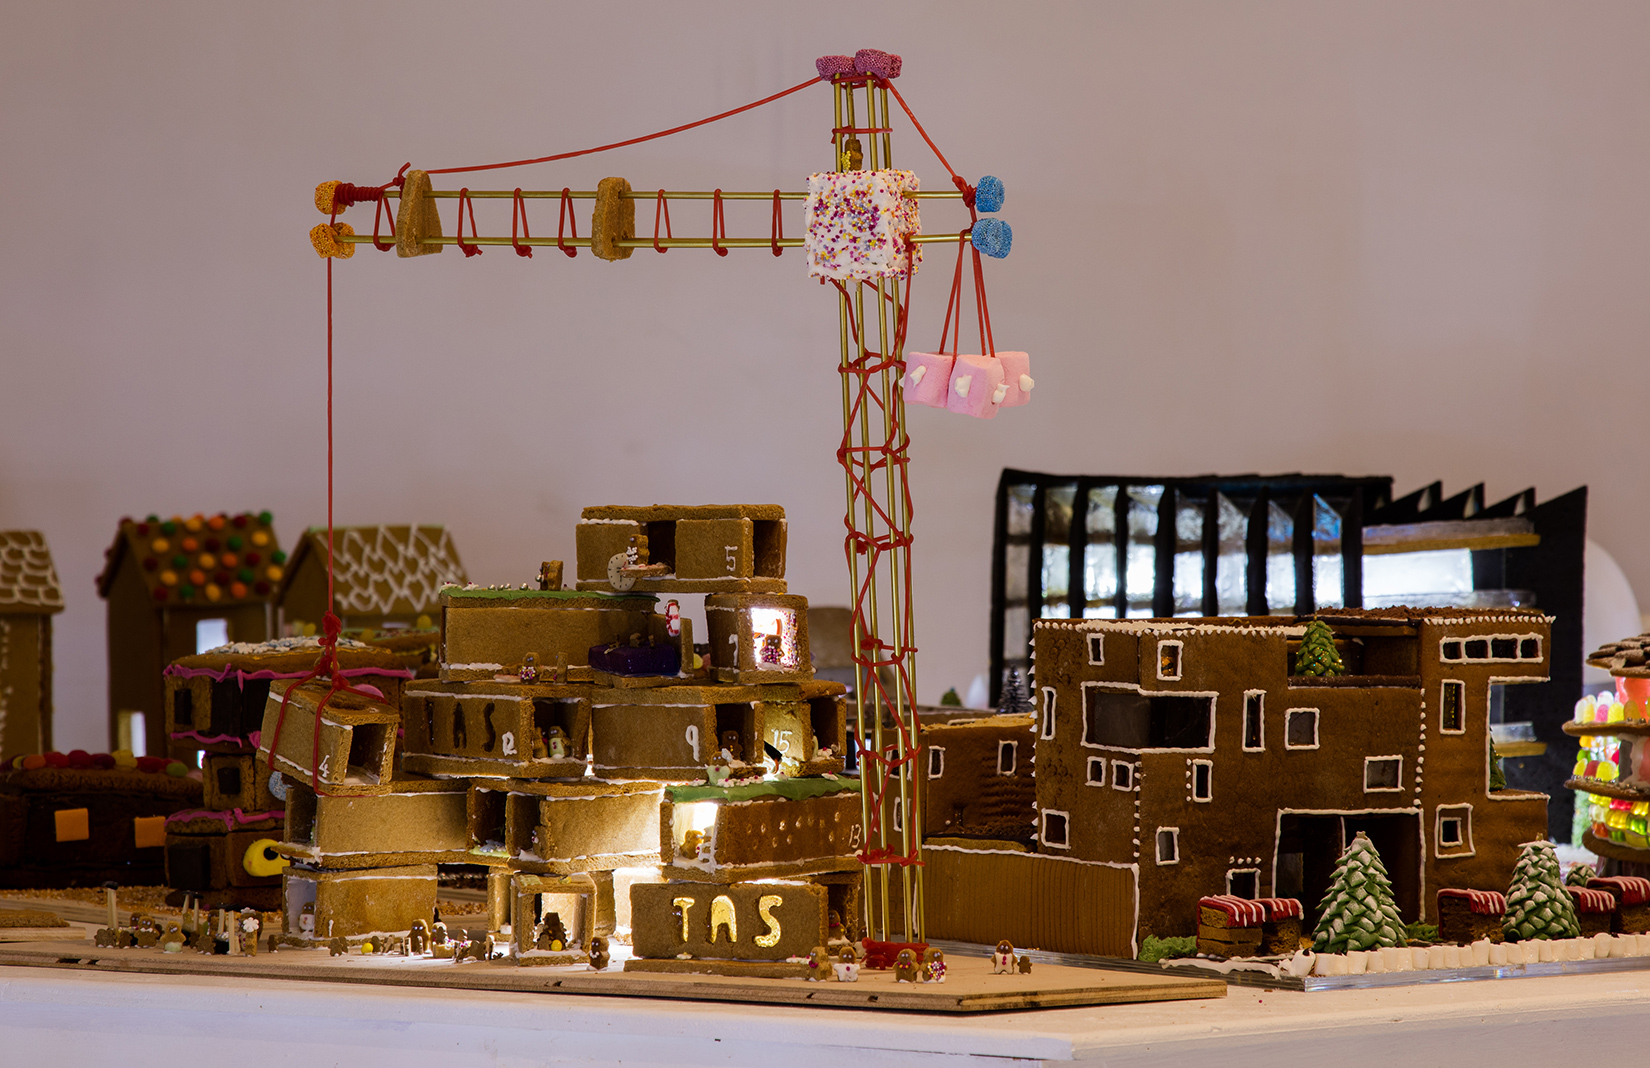 London Architects Build A Gingerbread City At The Museum